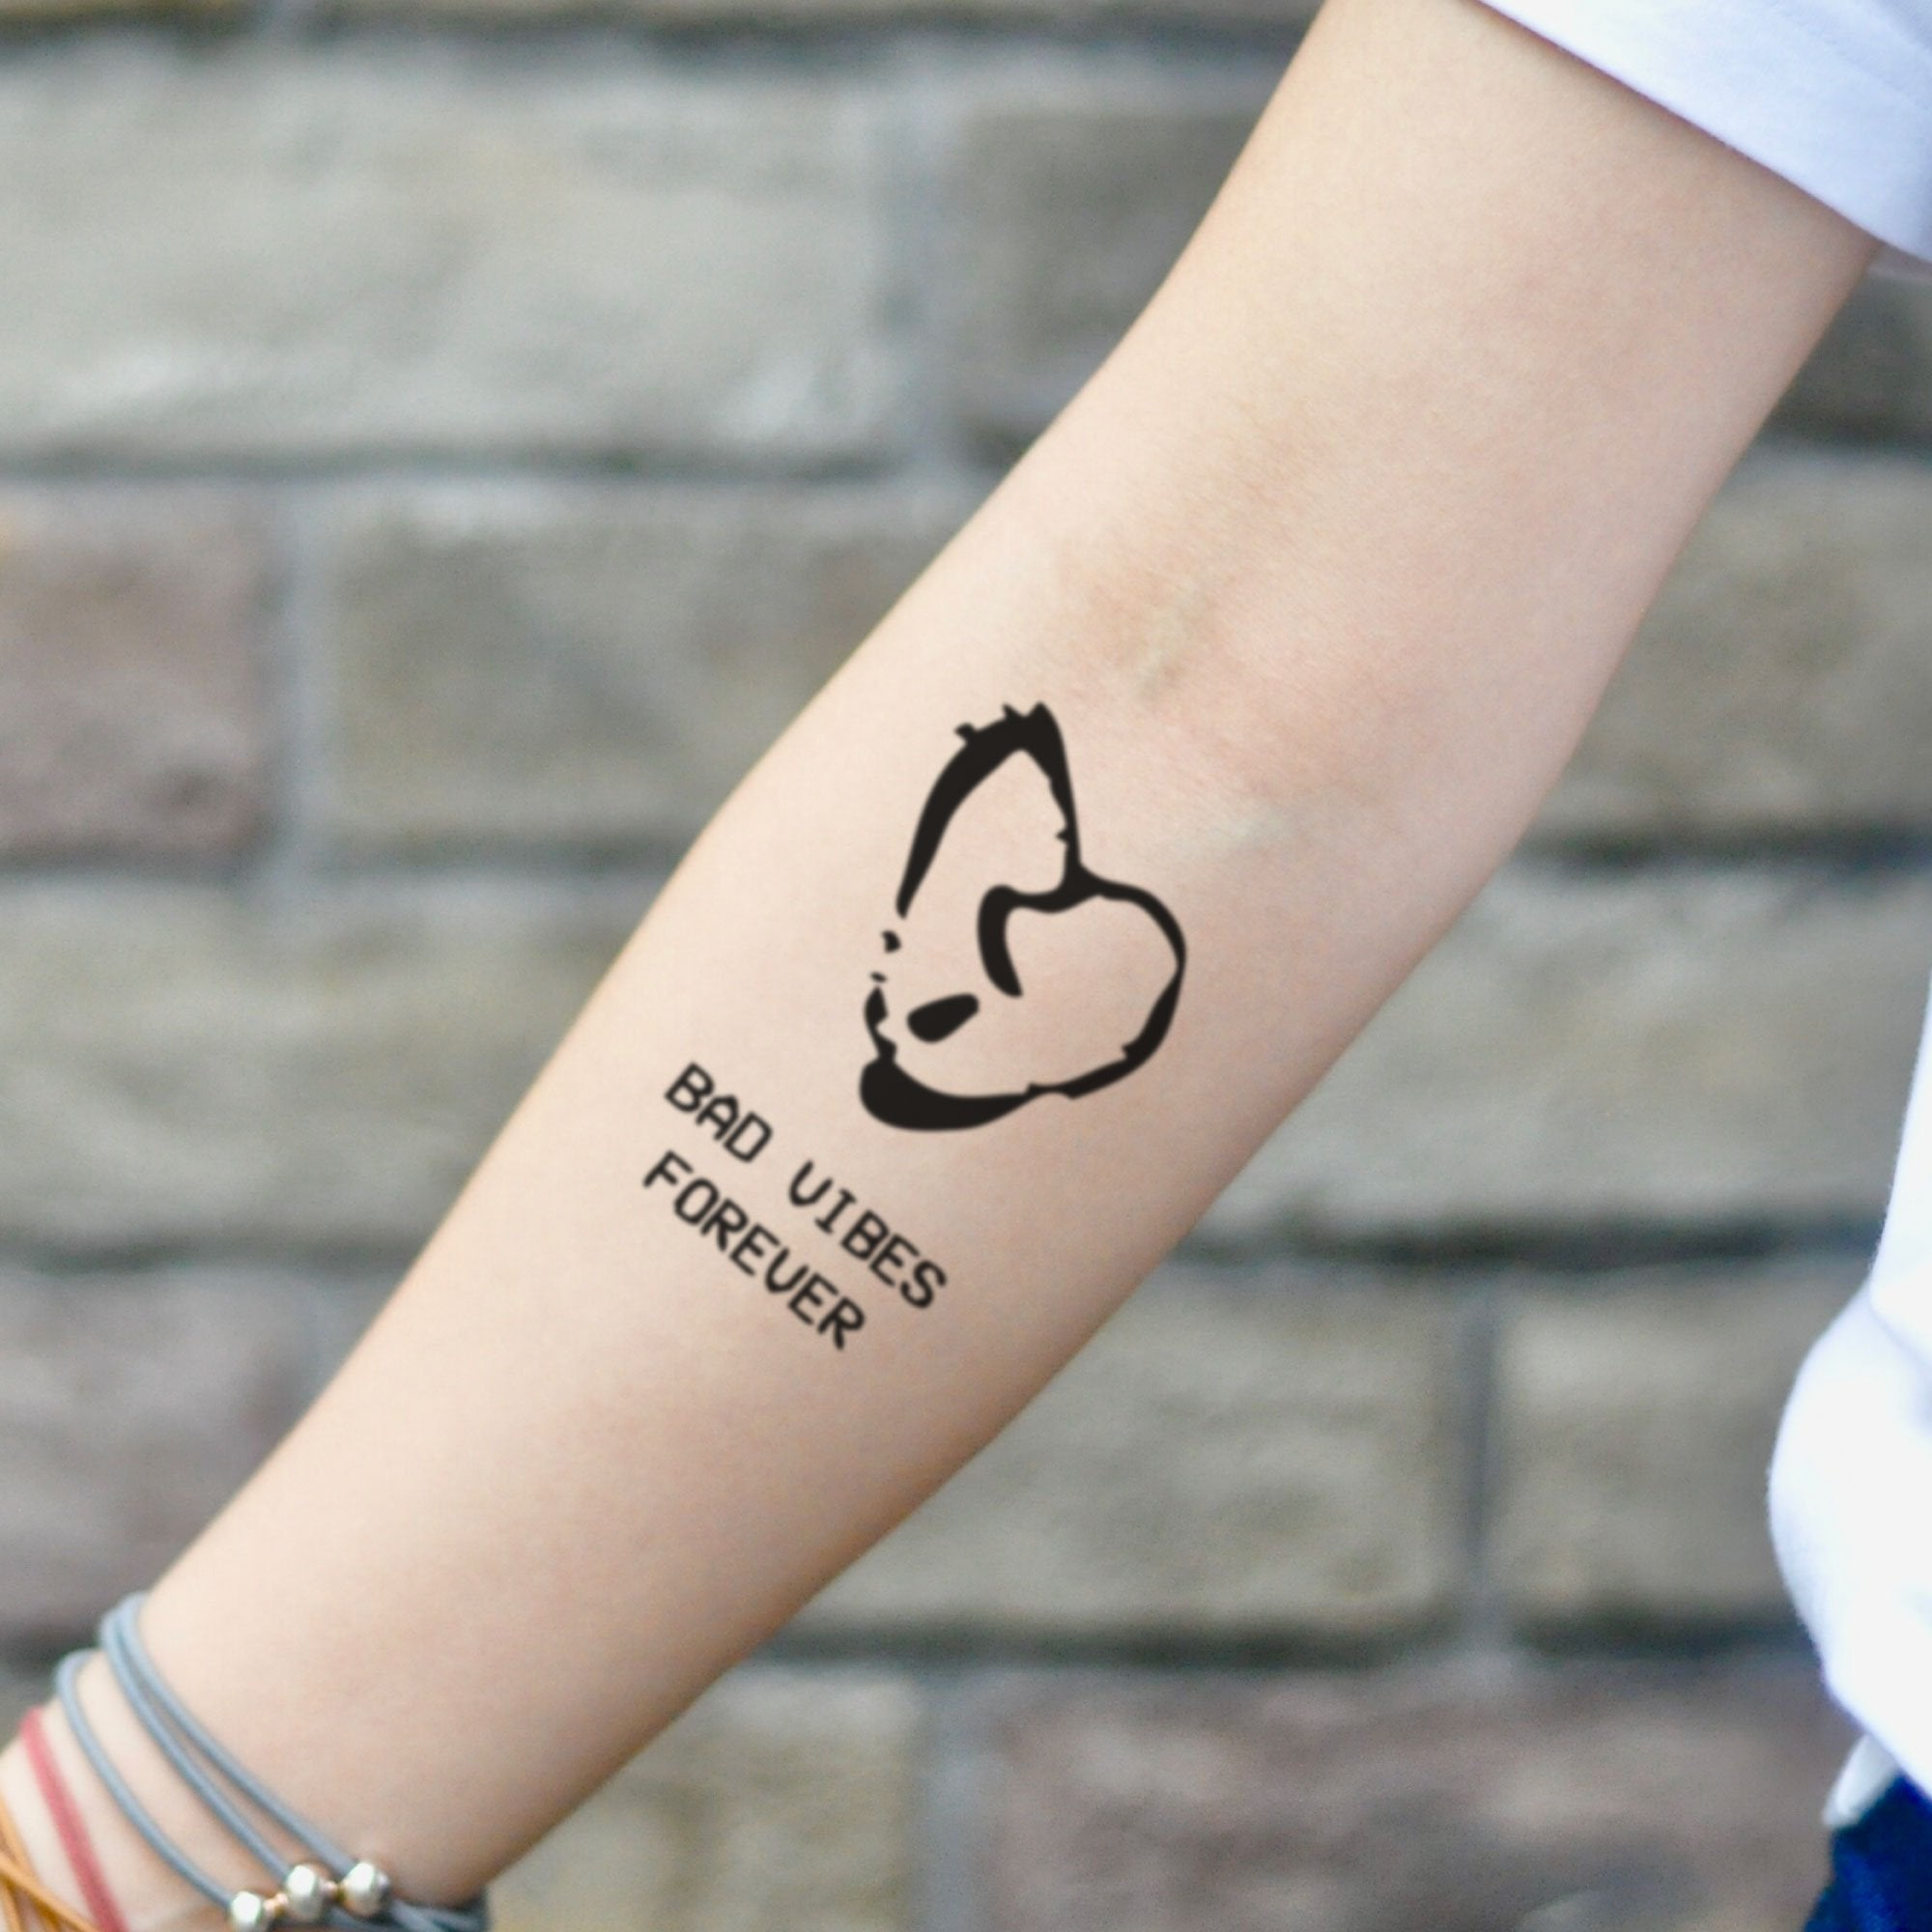 Bad Vibes Forever Temporary Tattoo Sticker (Set Of 2)